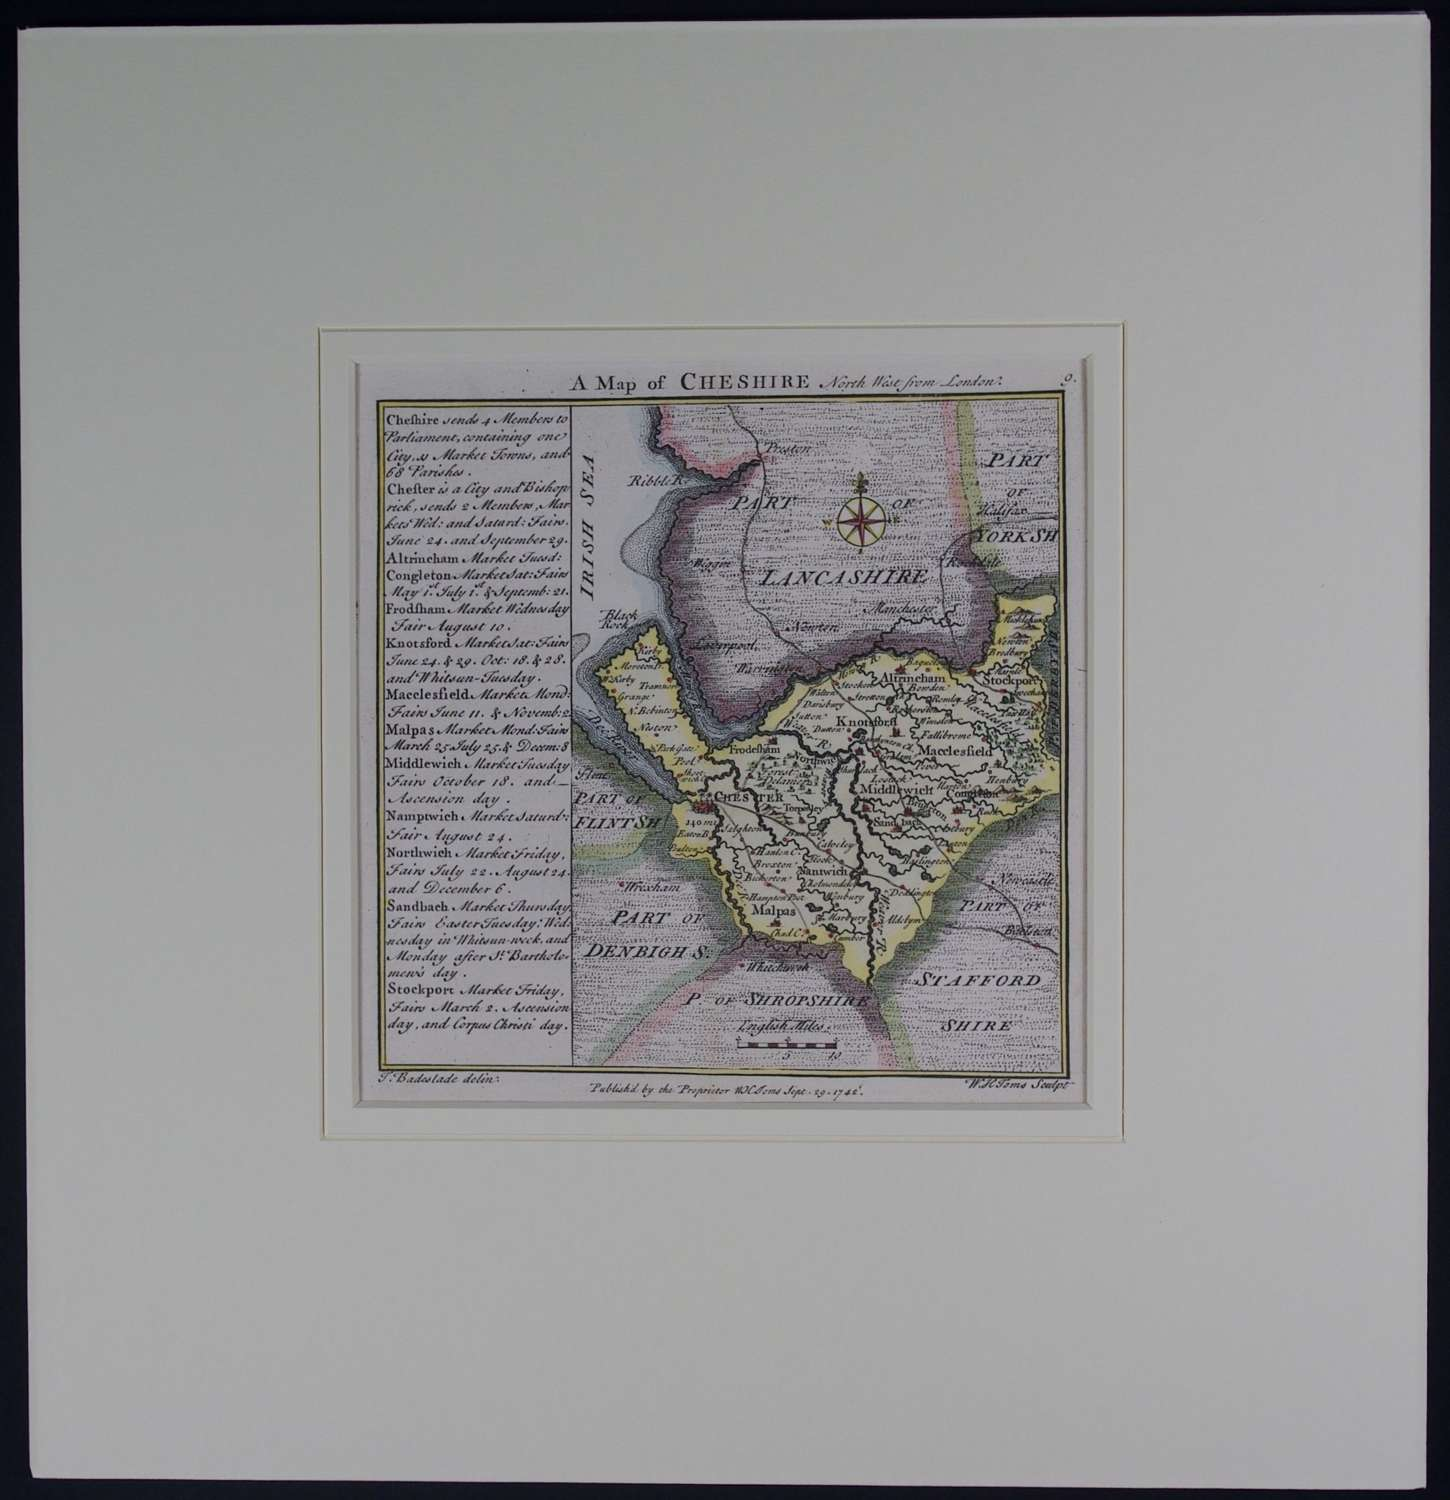 A Map of Cheshire by Thomas Badeslade